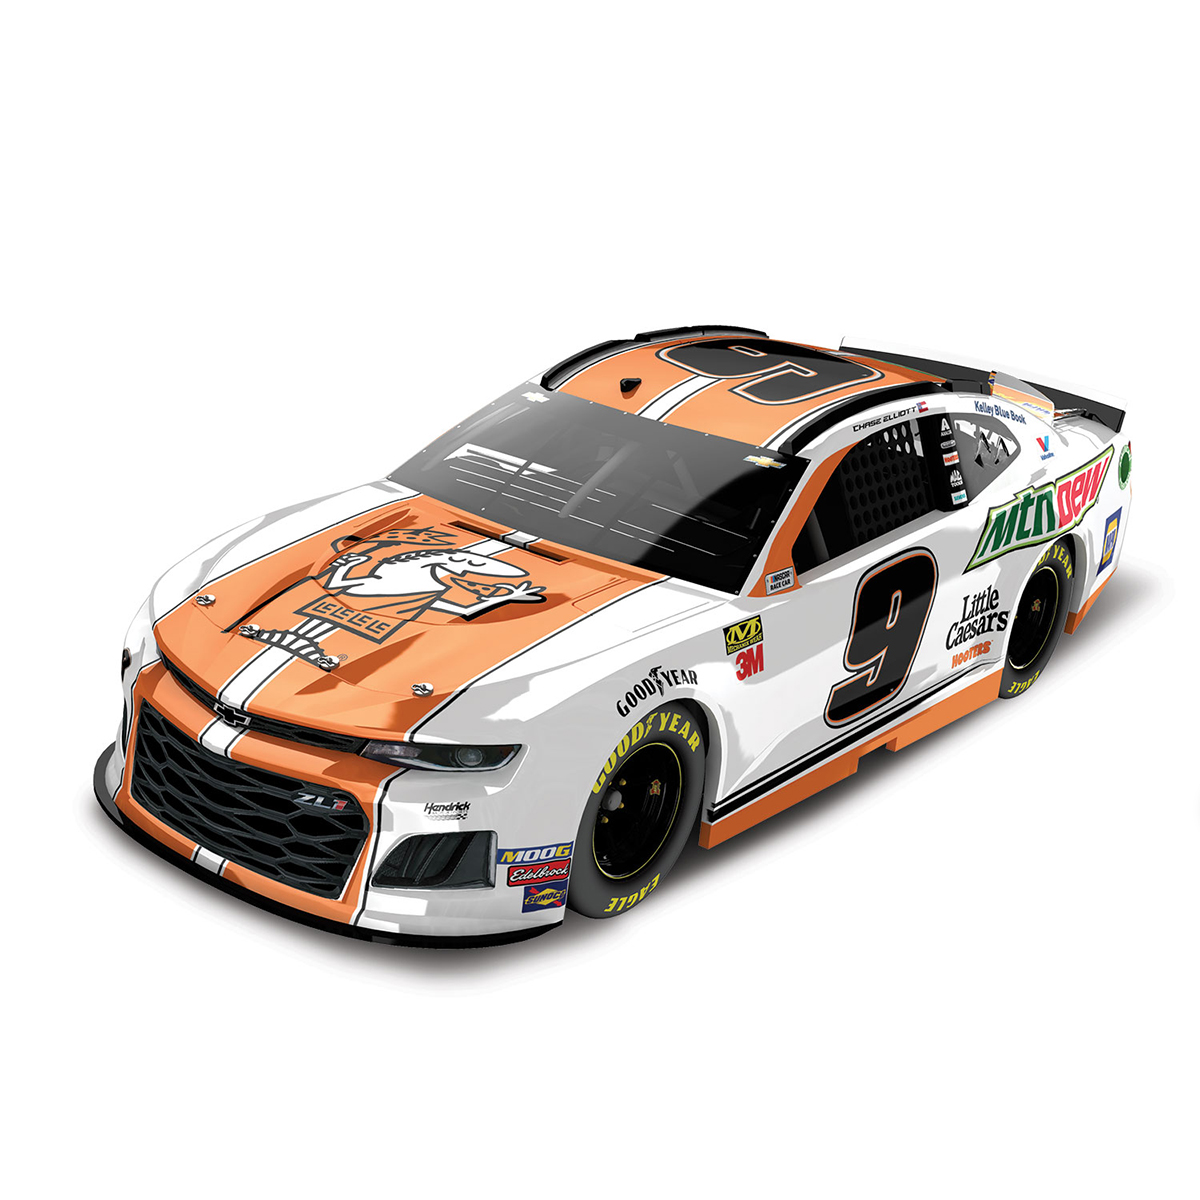 Chase Elliott 2019 #9 NASCAR Little Caesars/Mountain Dew HO 1:24 - Die Cast